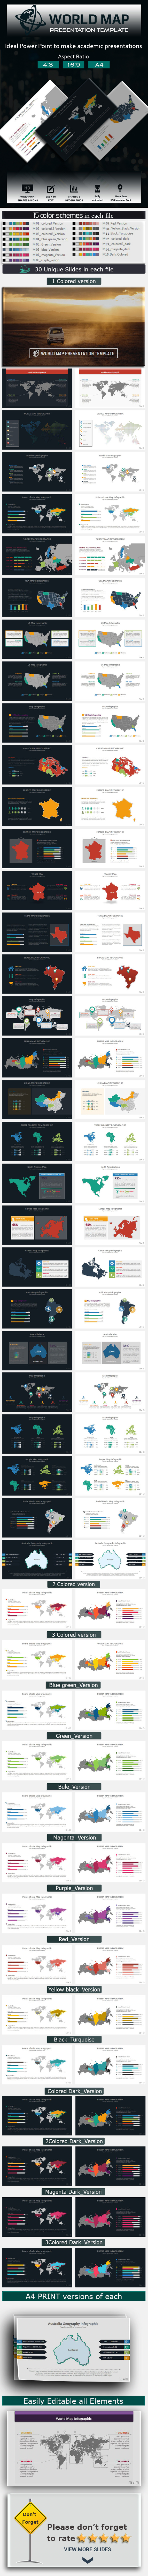 World Map PowerPoint Presentation Template - Business PowerPoint Templates